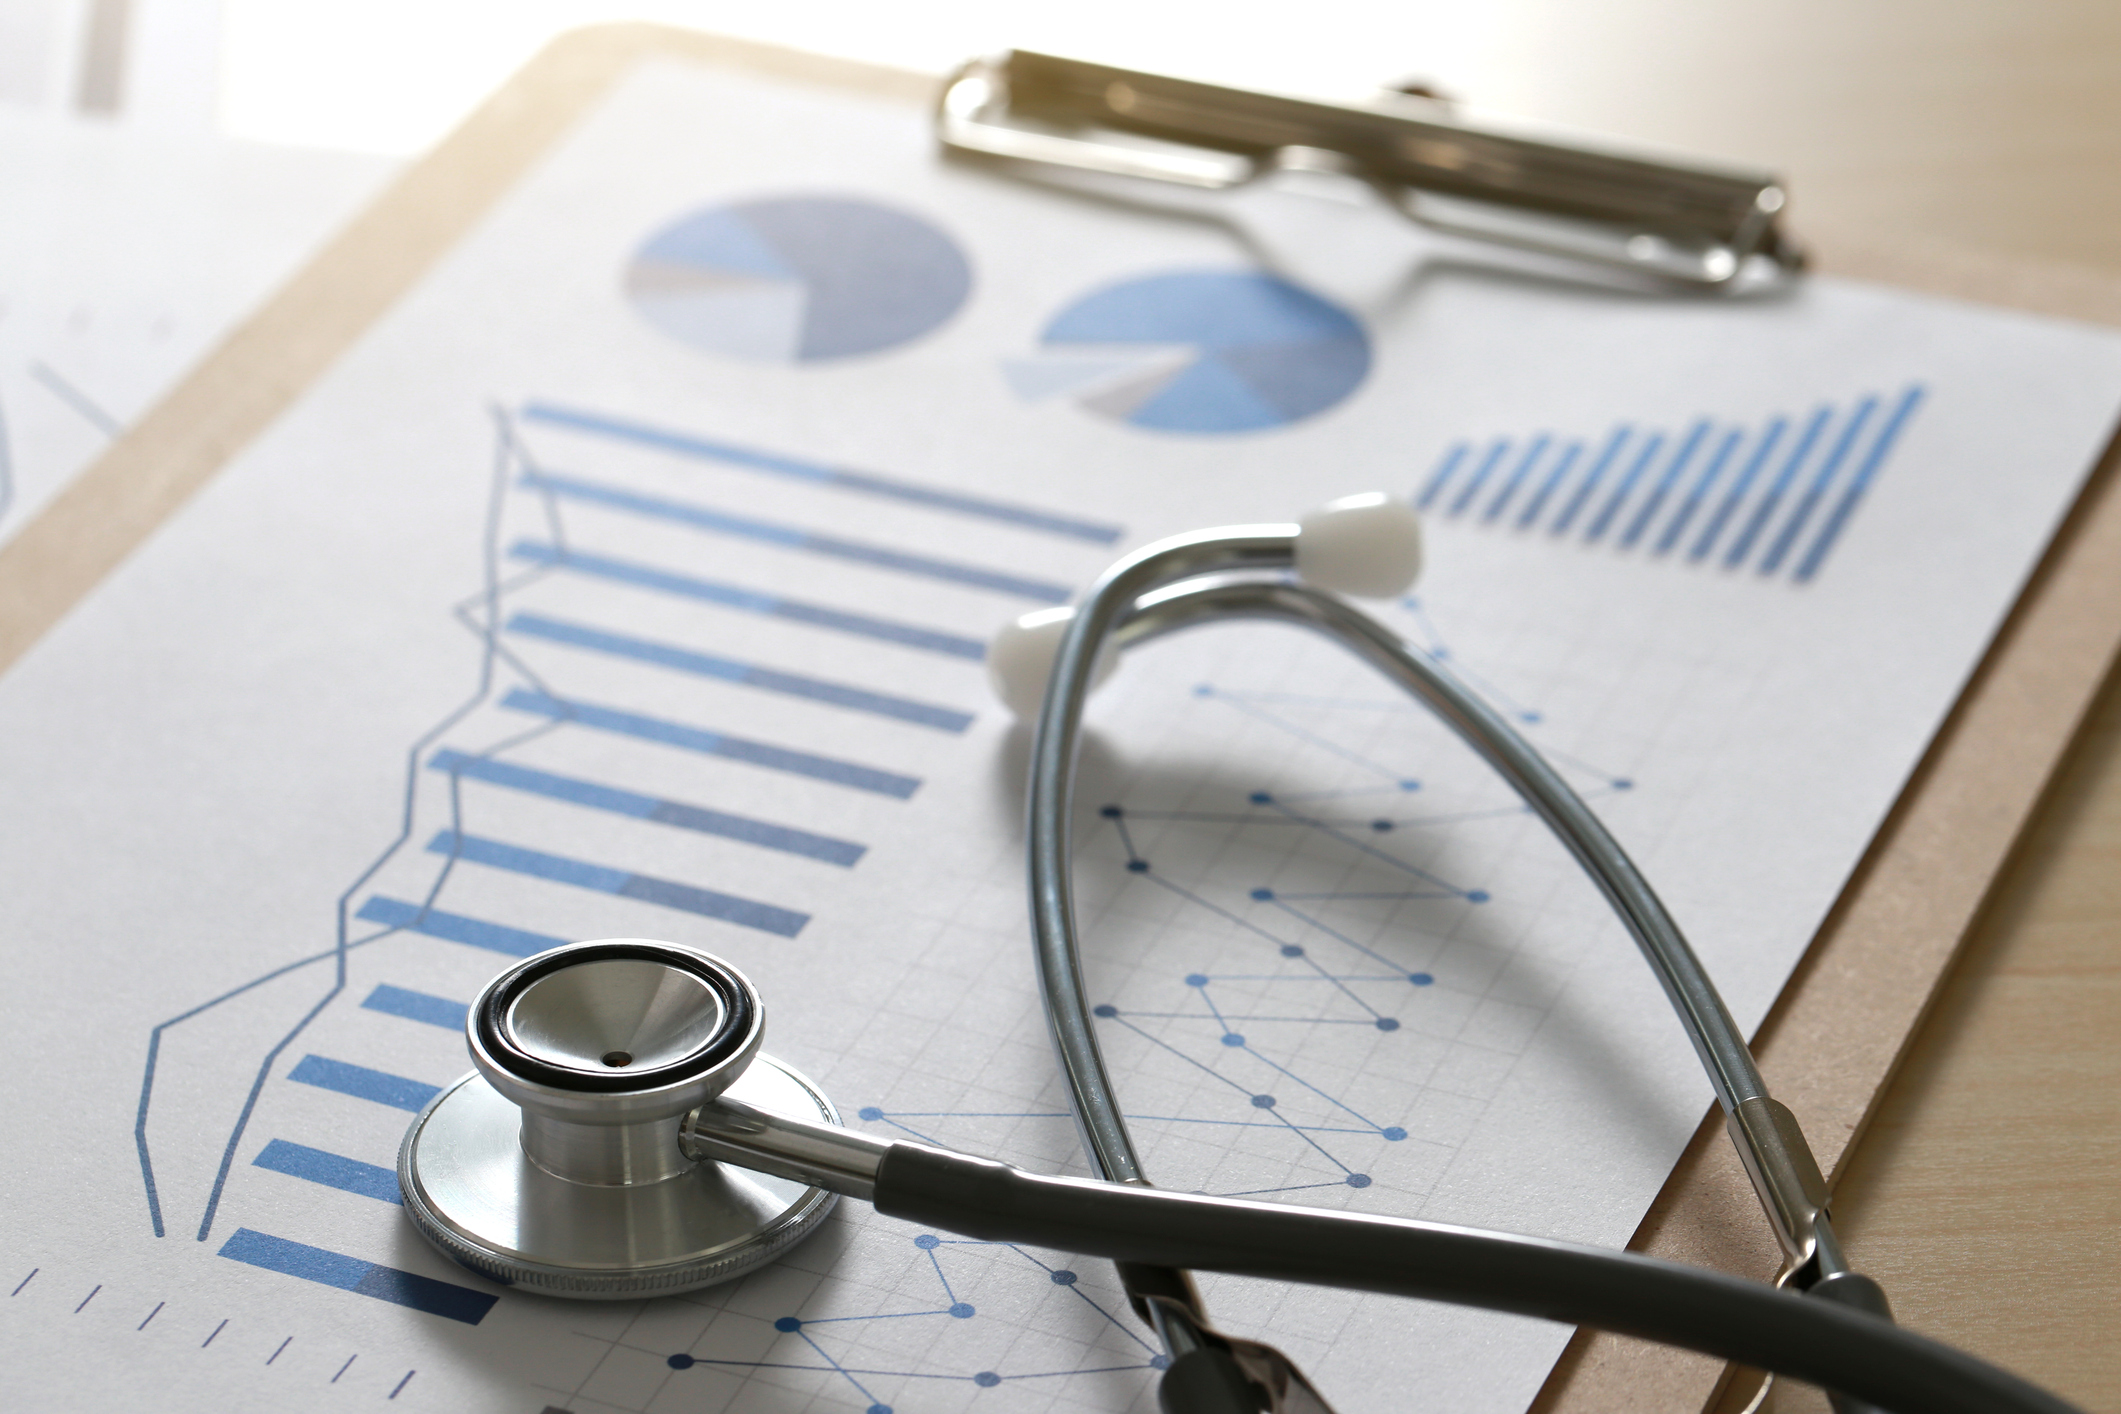 Photo of a Stethoscope, charts, clipboard